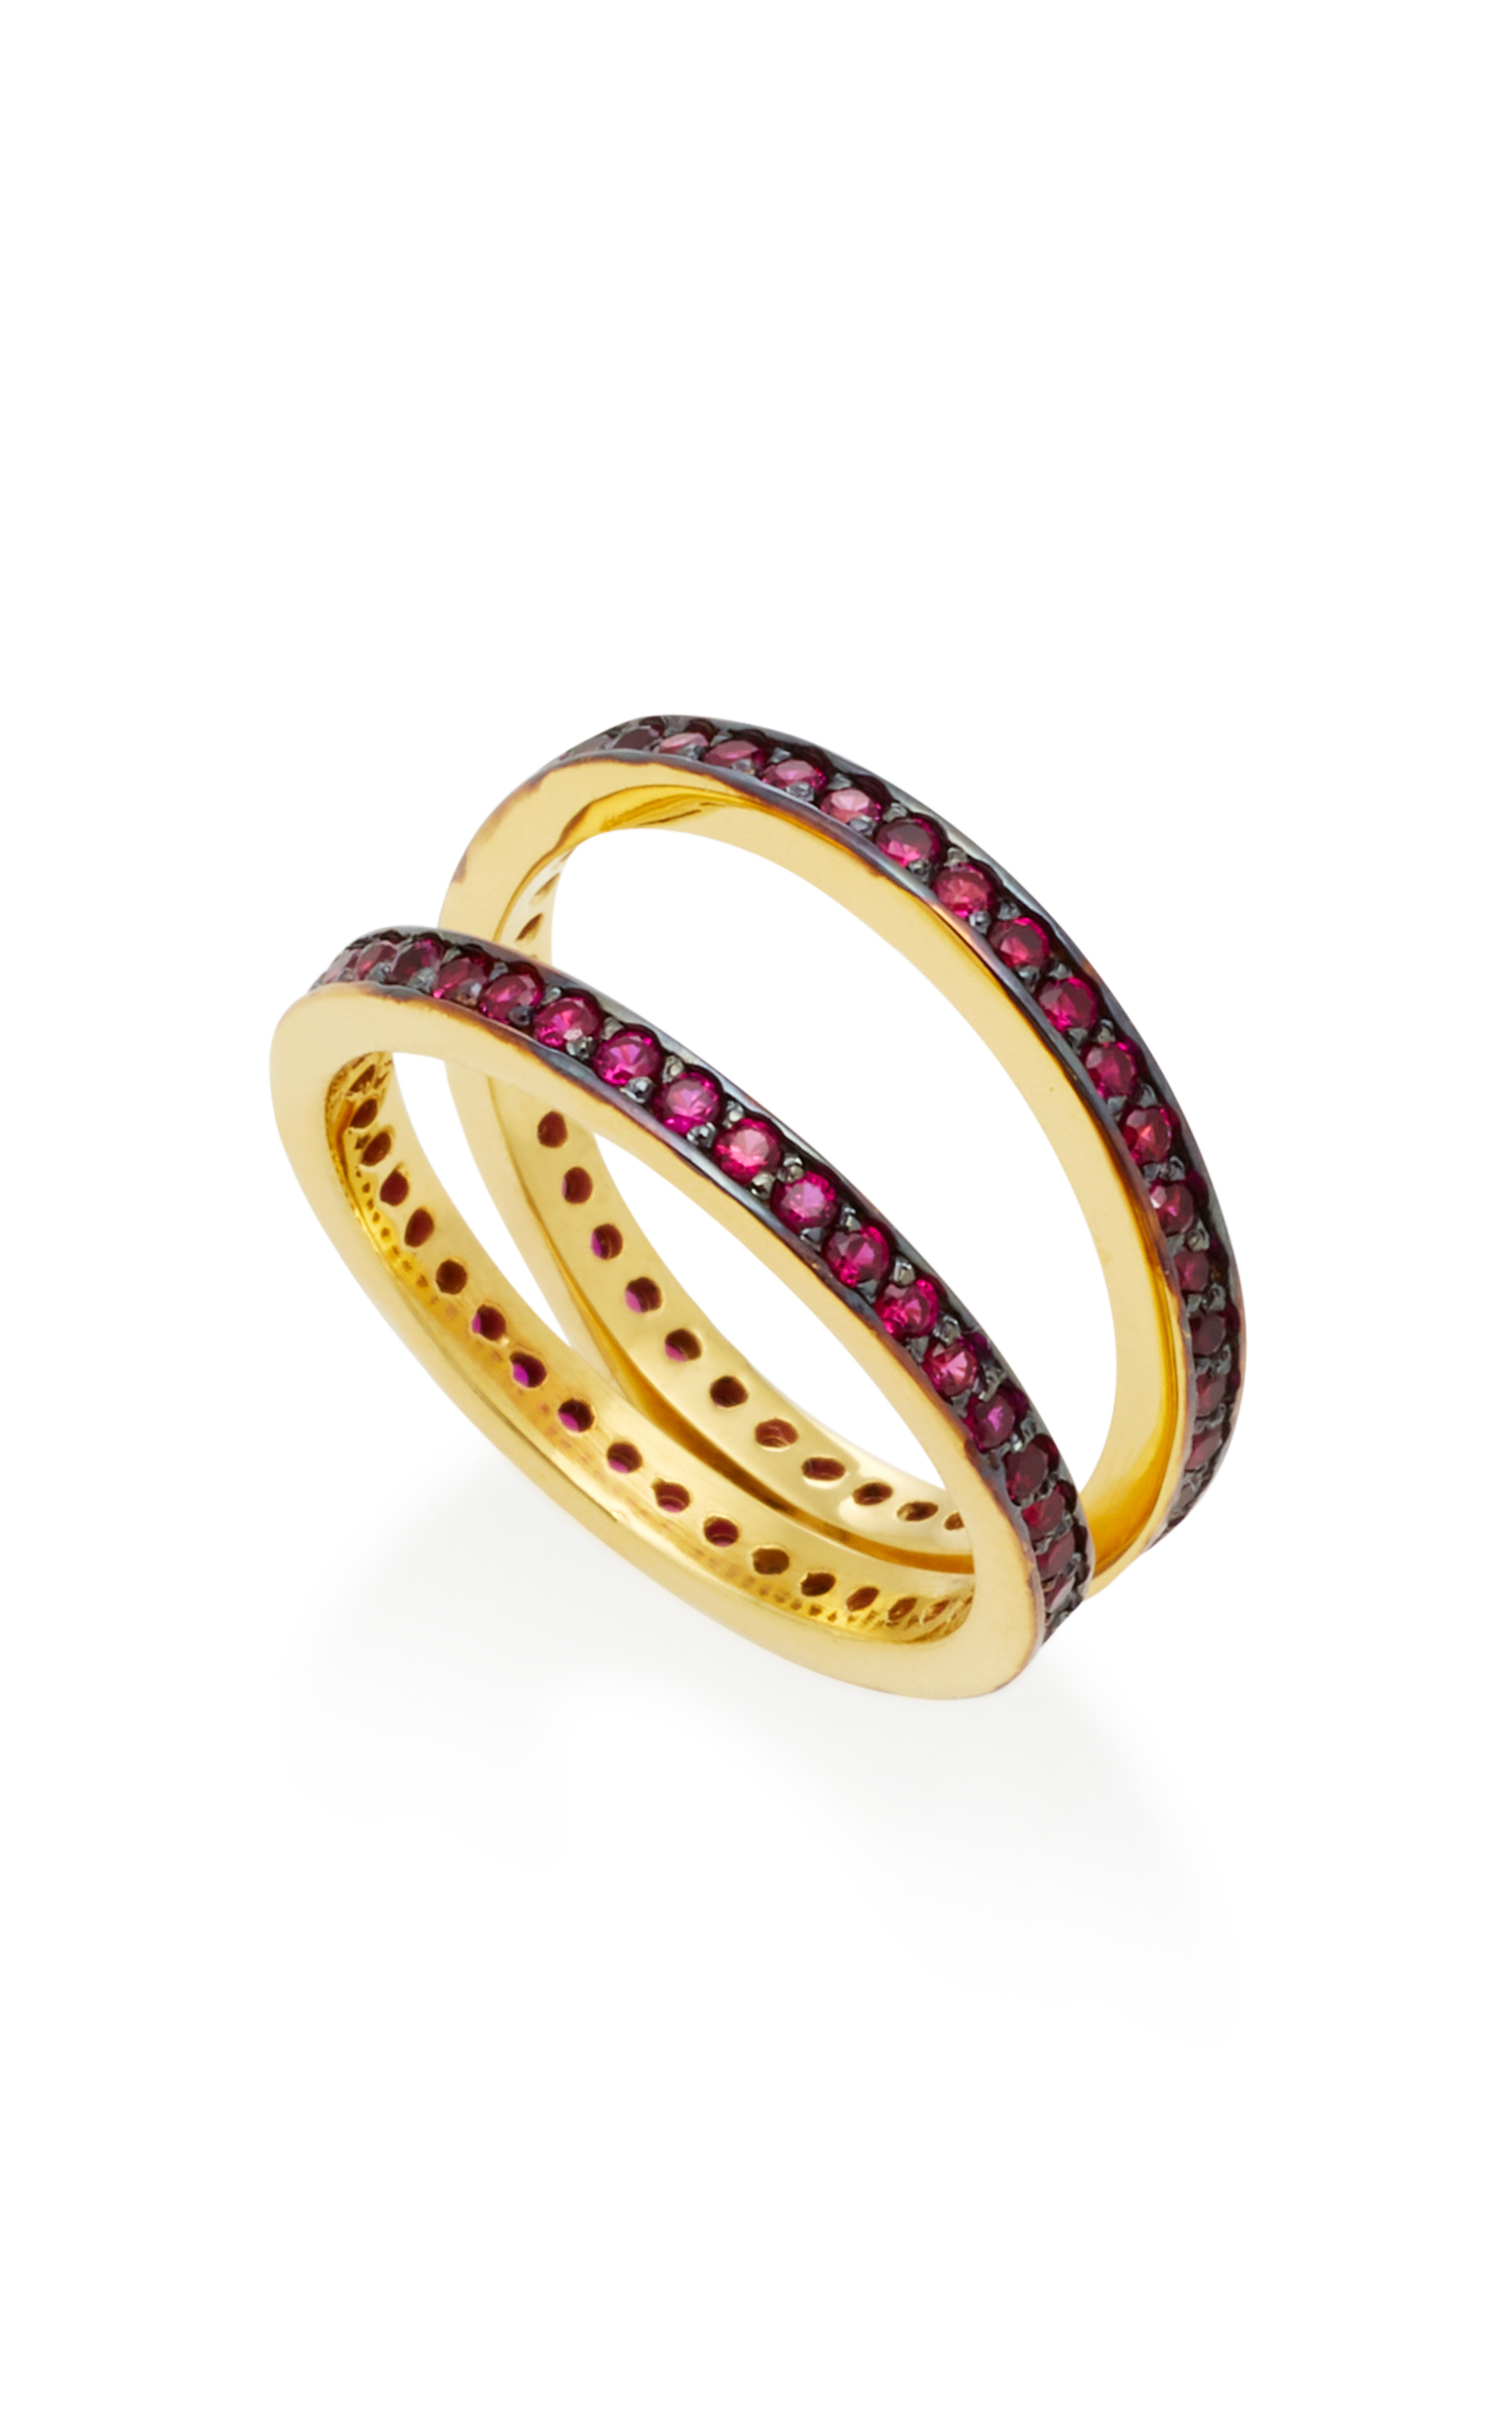 Gold-Plated Ruby Crisscross Ring Joanna Laura Constantine hfcrCmkgqR